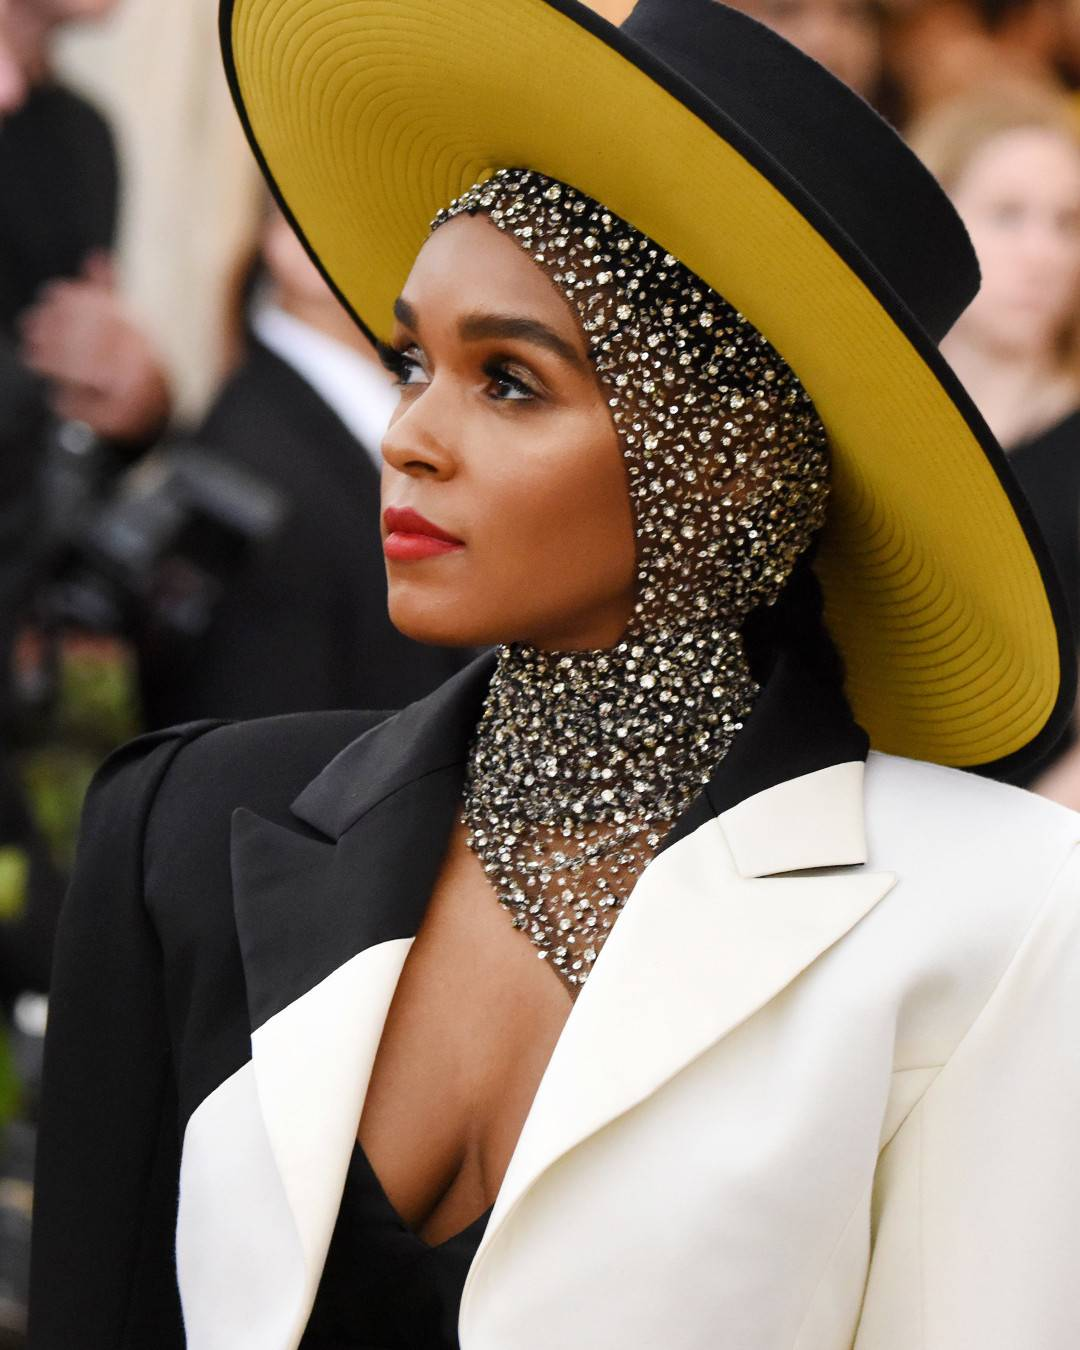 rs_1080x1350-180507205801-1080x1350-Best-Beauty-Met-Gala-2018-Janelle-Monae.jpg